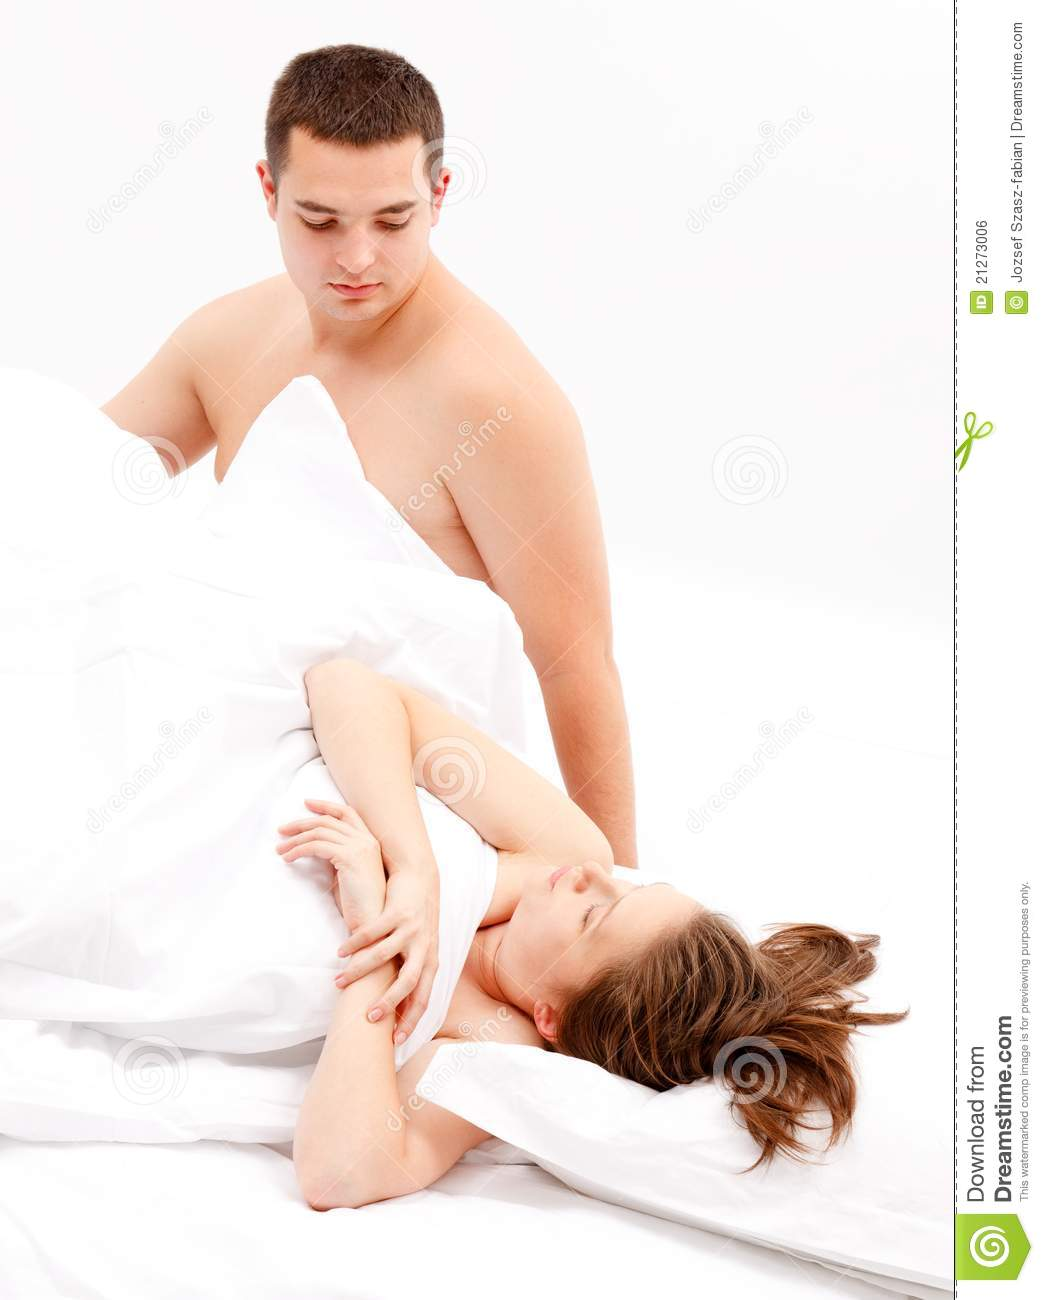 cold relation between couple in bed royalty free stock image image 21273006. Black Bedroom Furniture Sets. Home Design Ideas